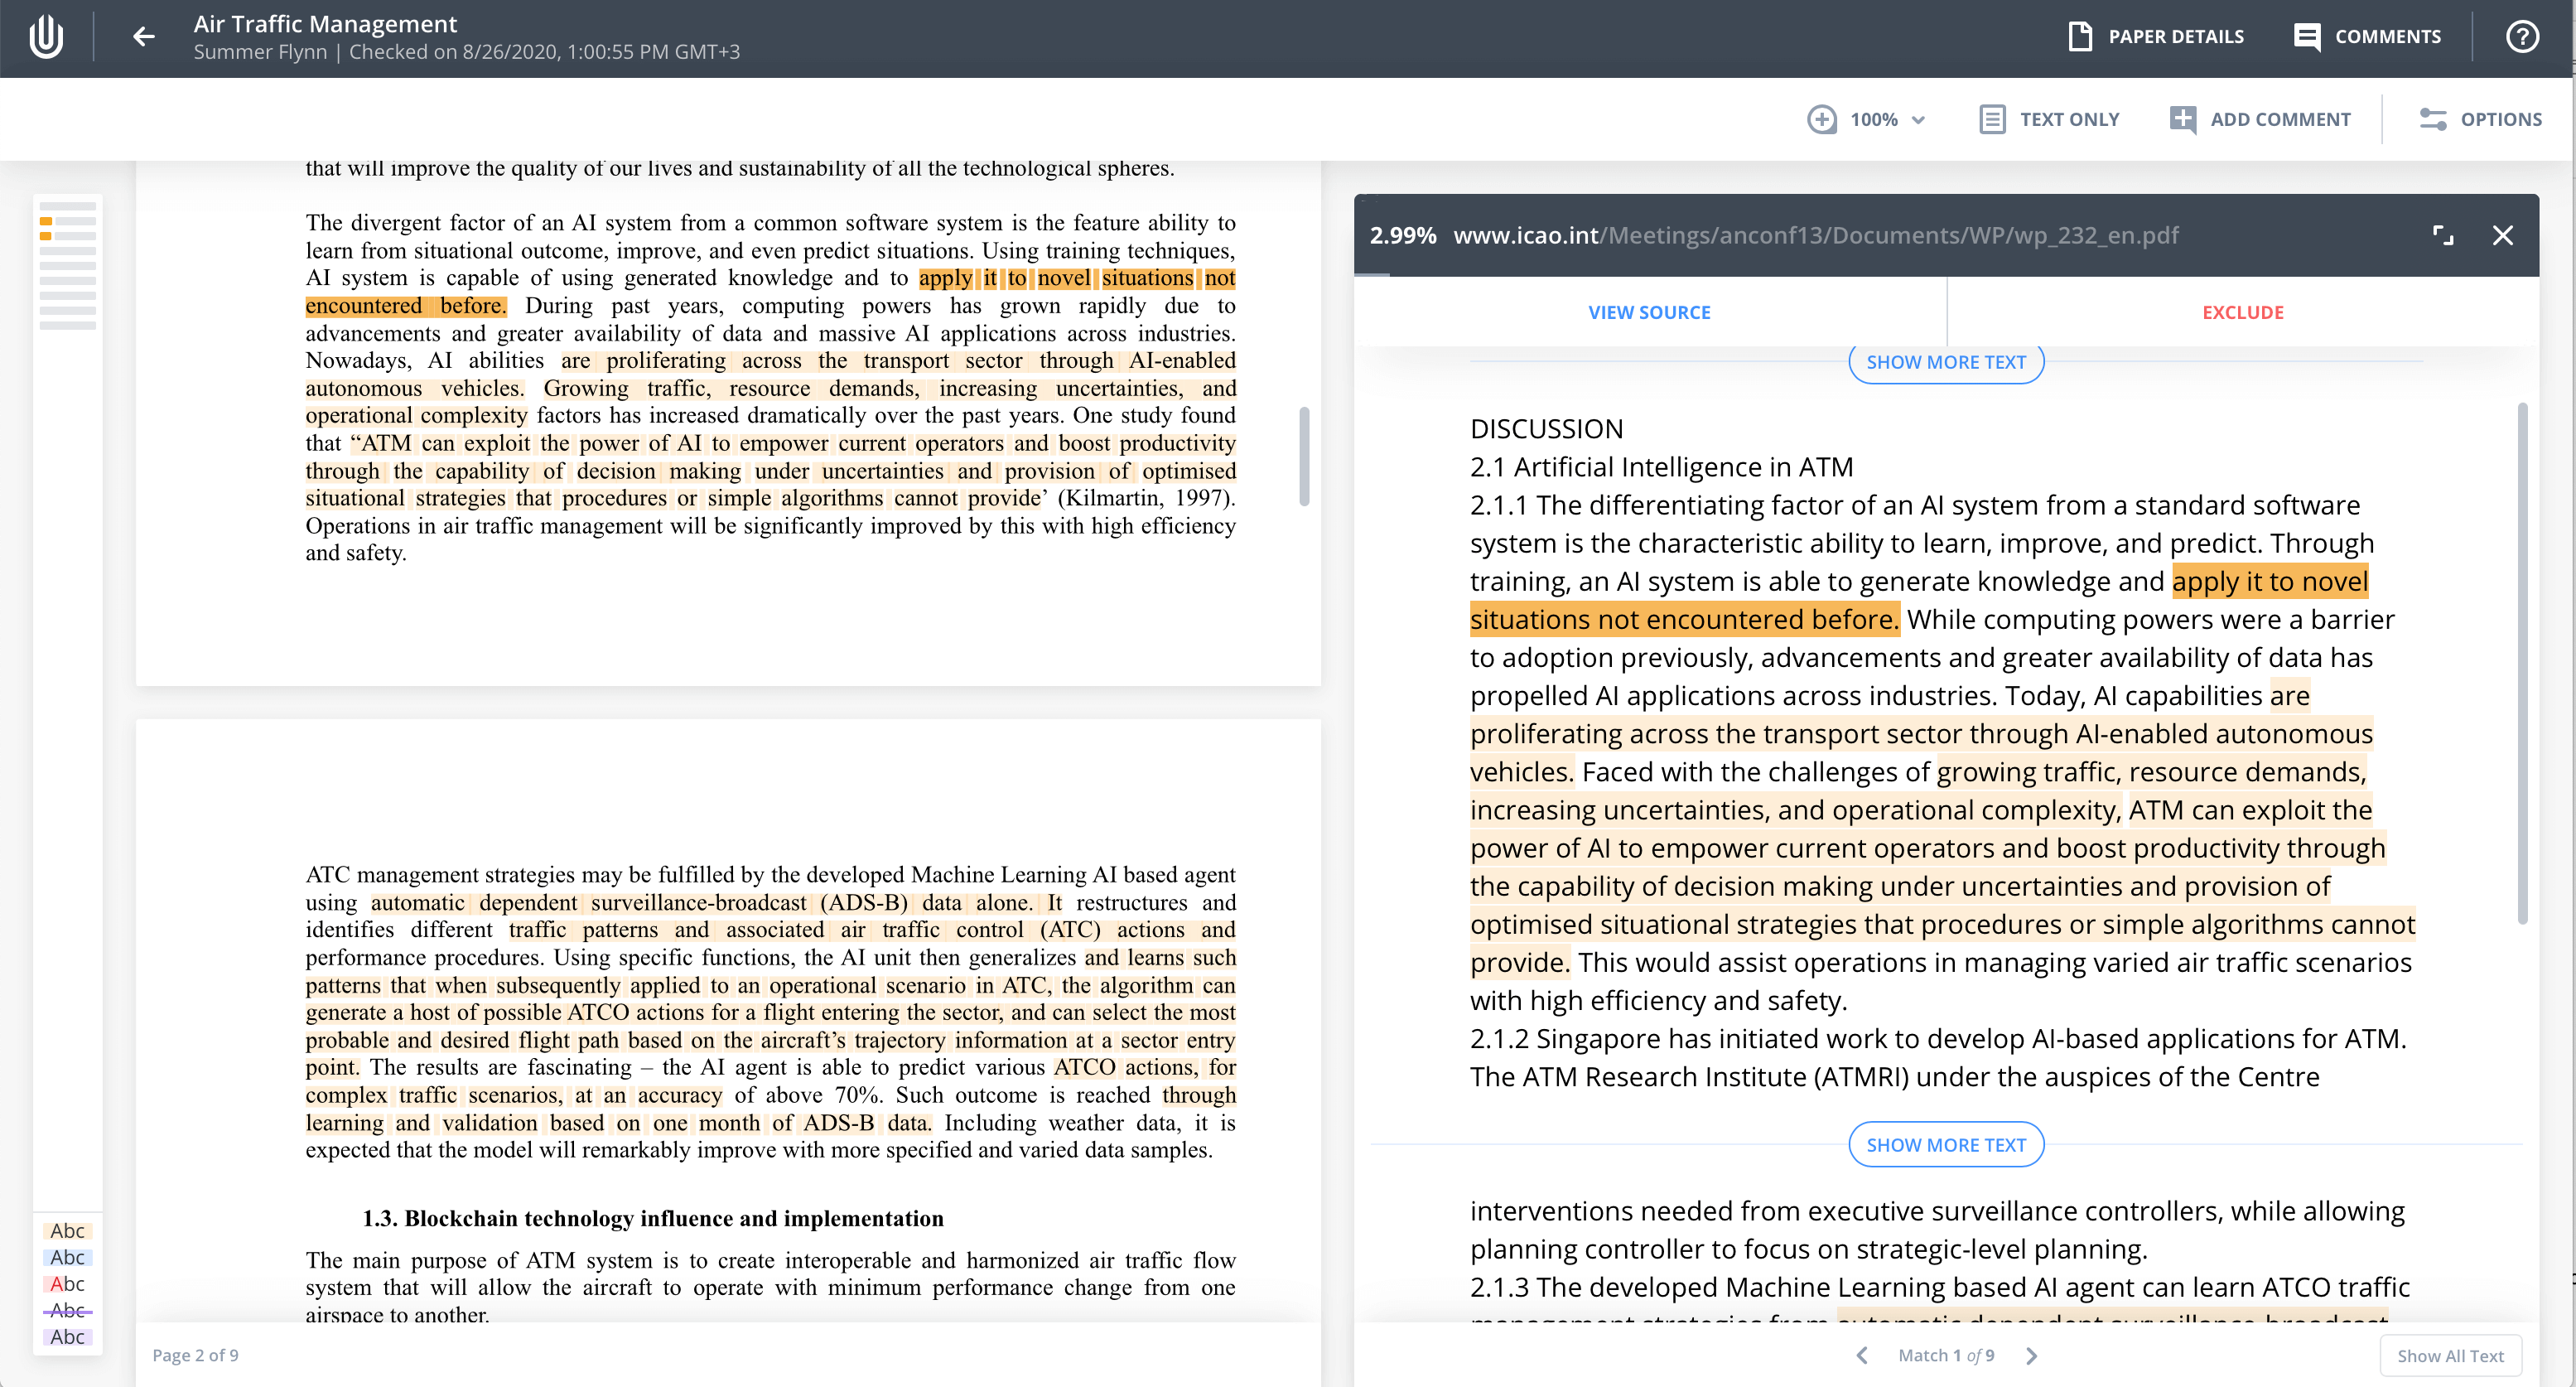 Side-by-side comparison mode in the Unicheck report